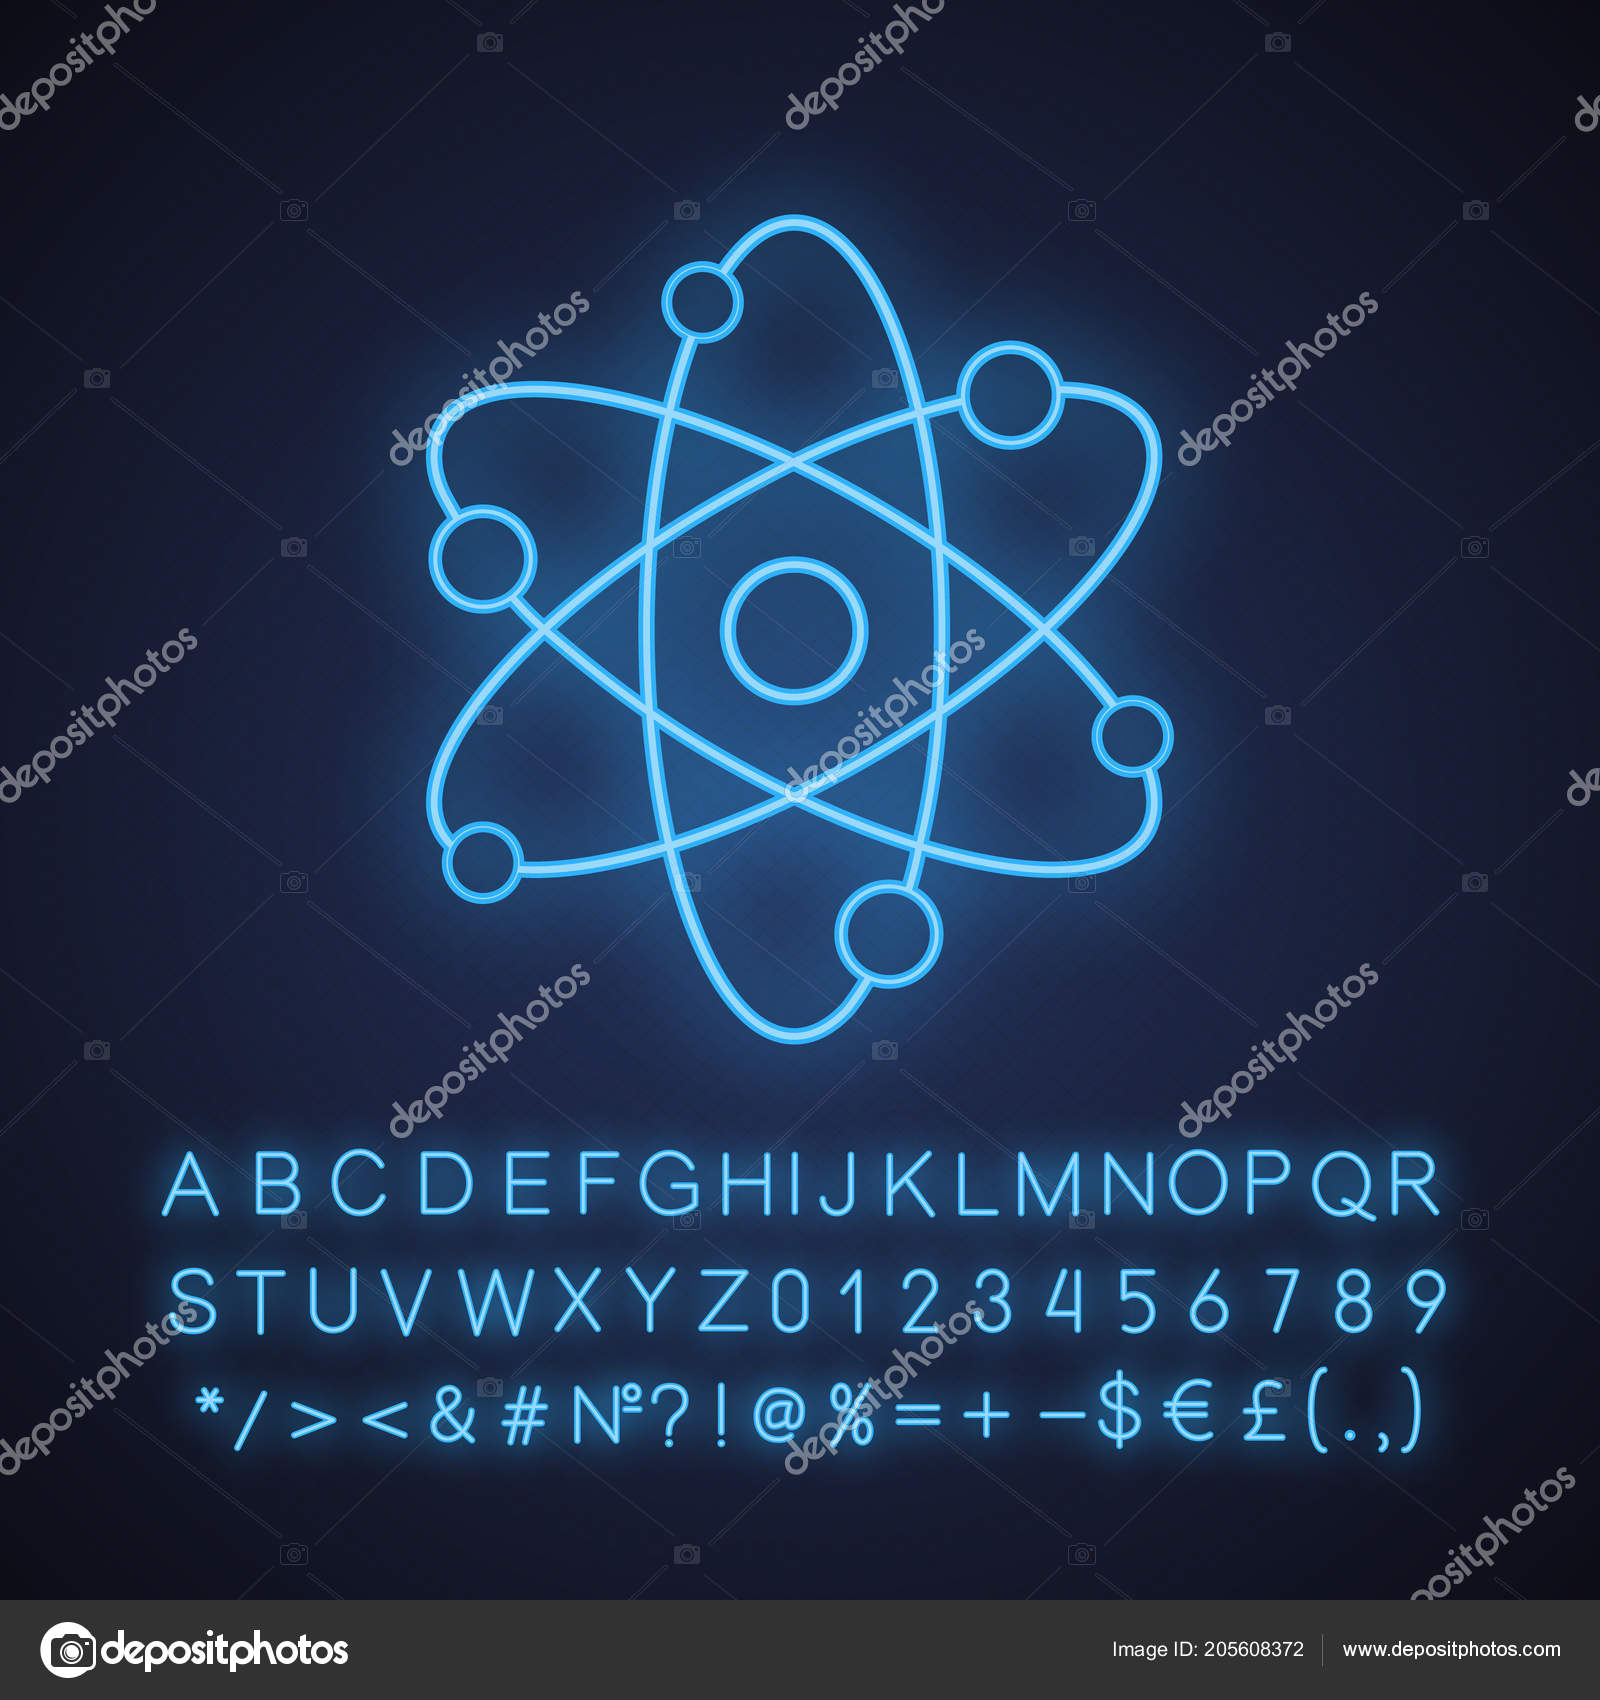 Atom structure neon light icon physics glowing sign alphabet numbers atom structure neon light icon physics glowing sign alphabet numbers vetores de stock ccuart Gallery